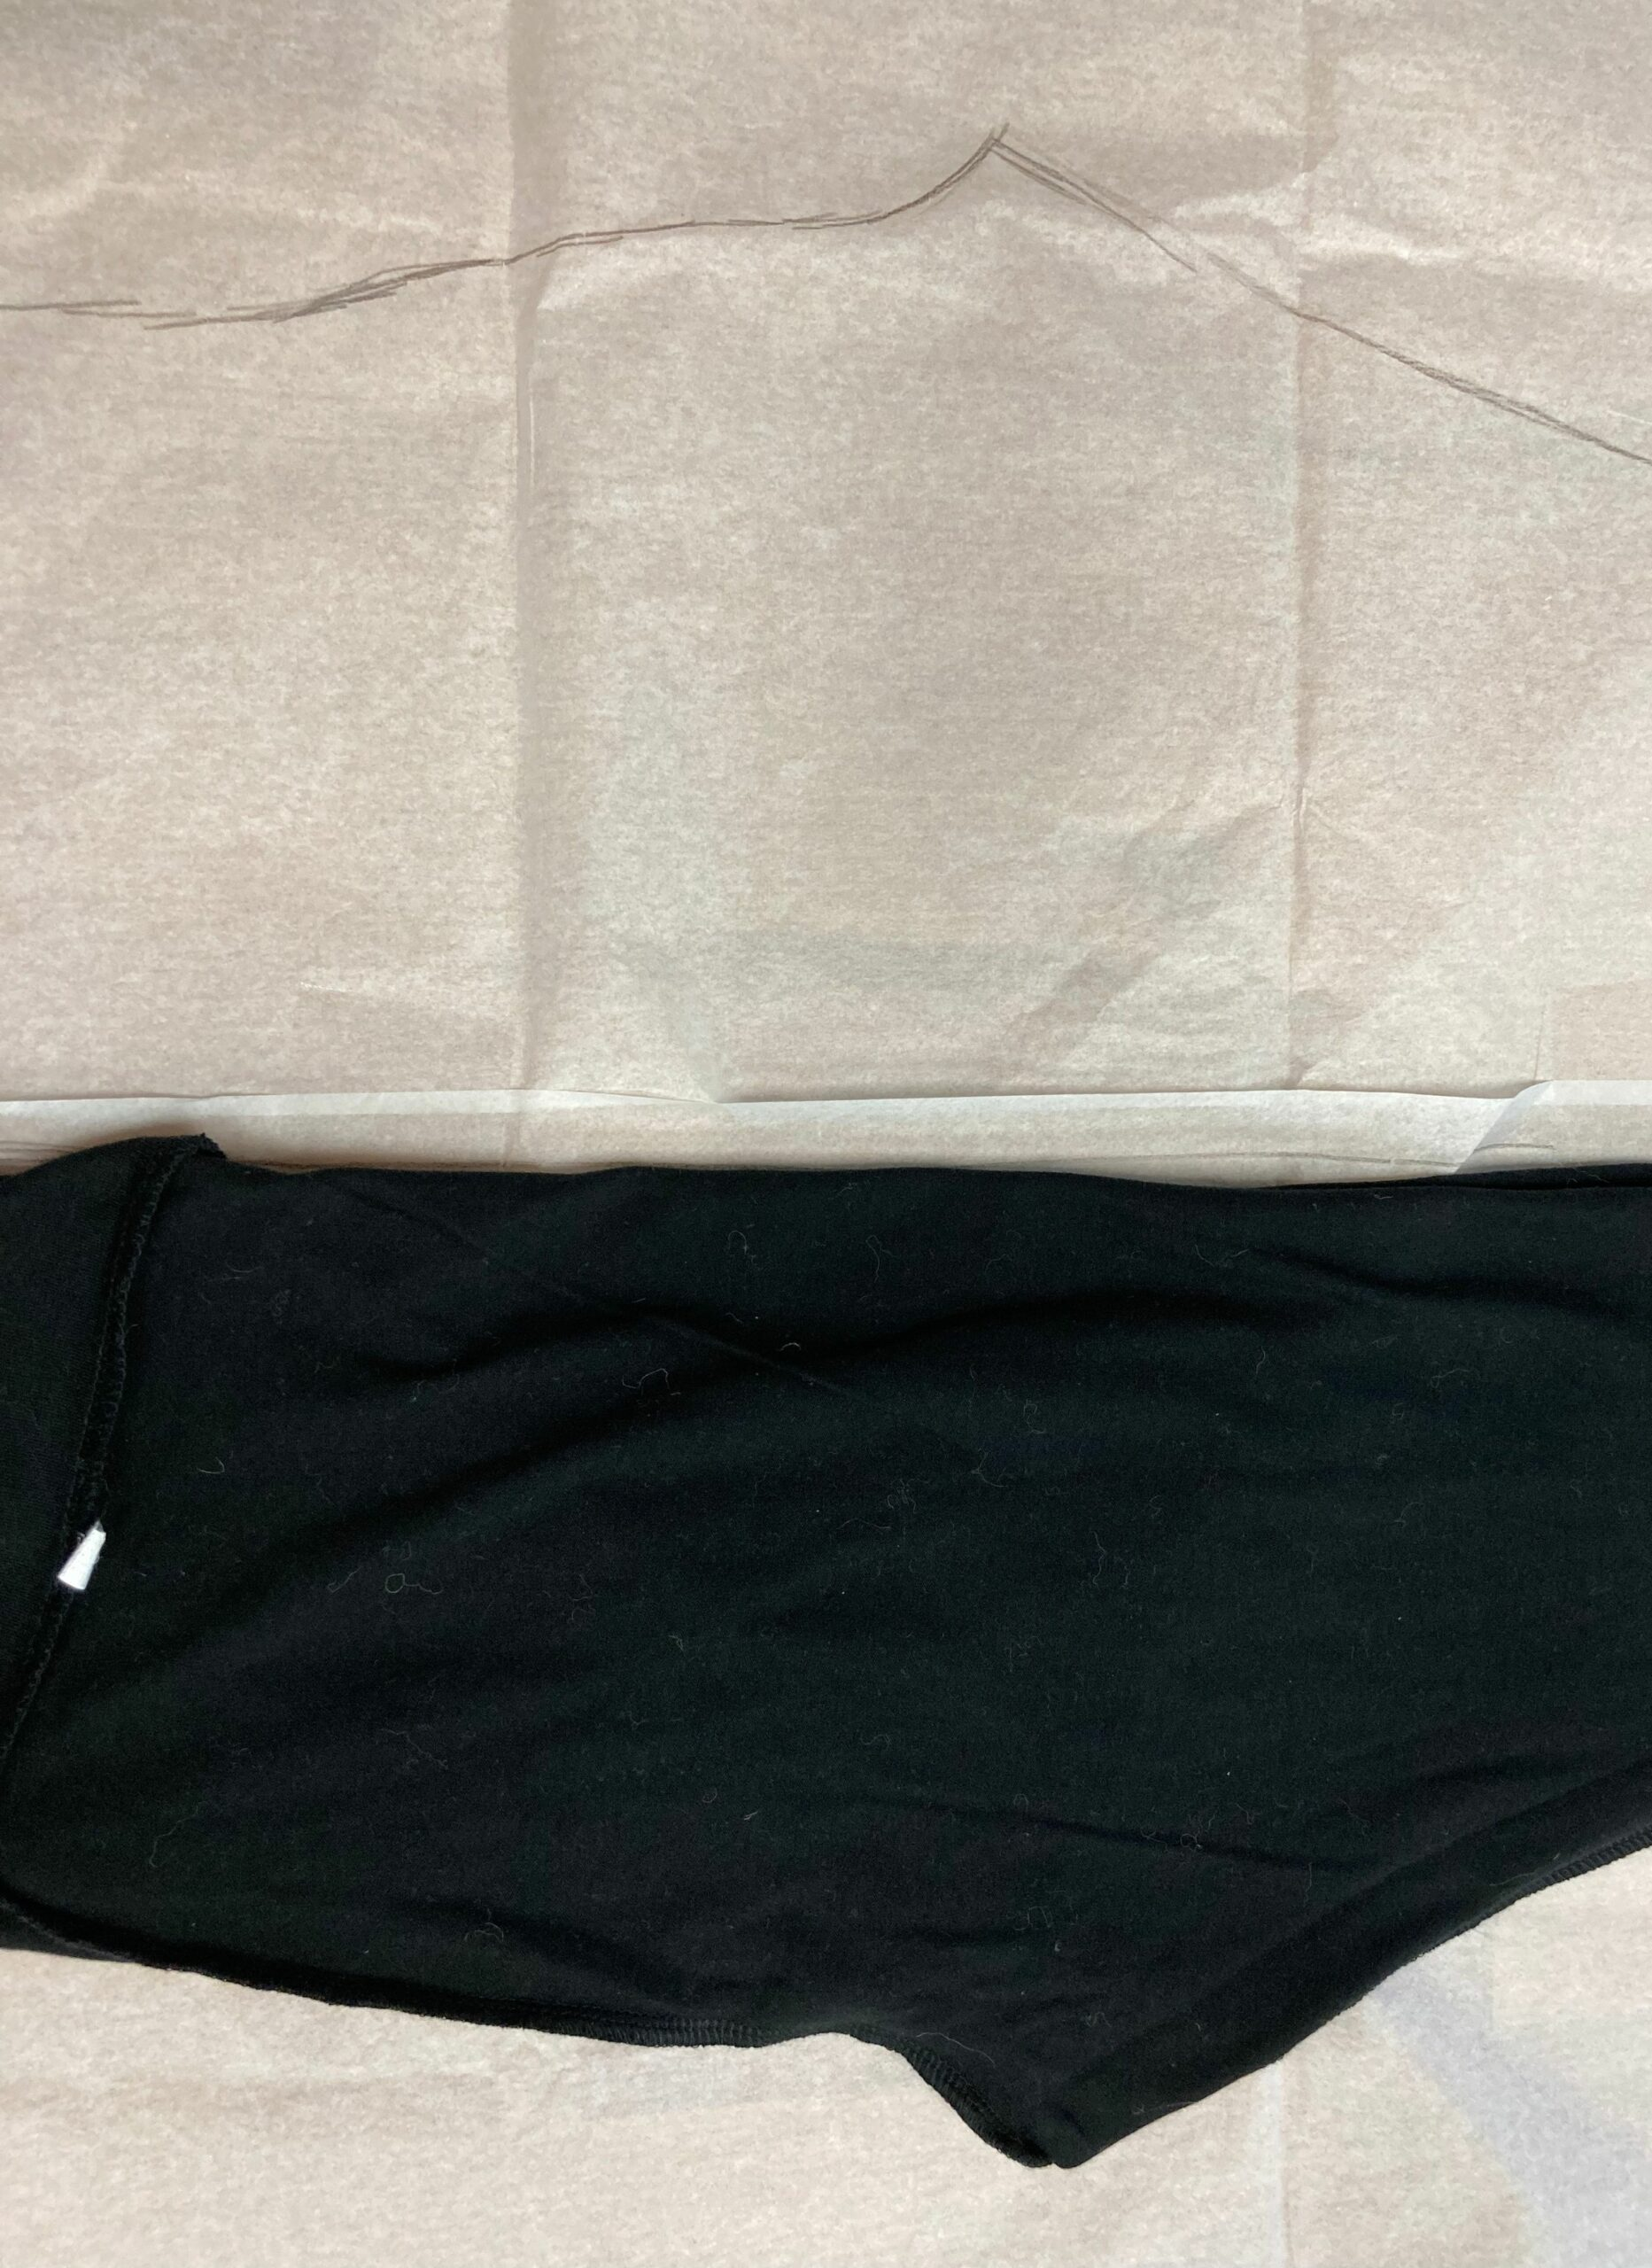 Leggings flipped over prior to tracing back side